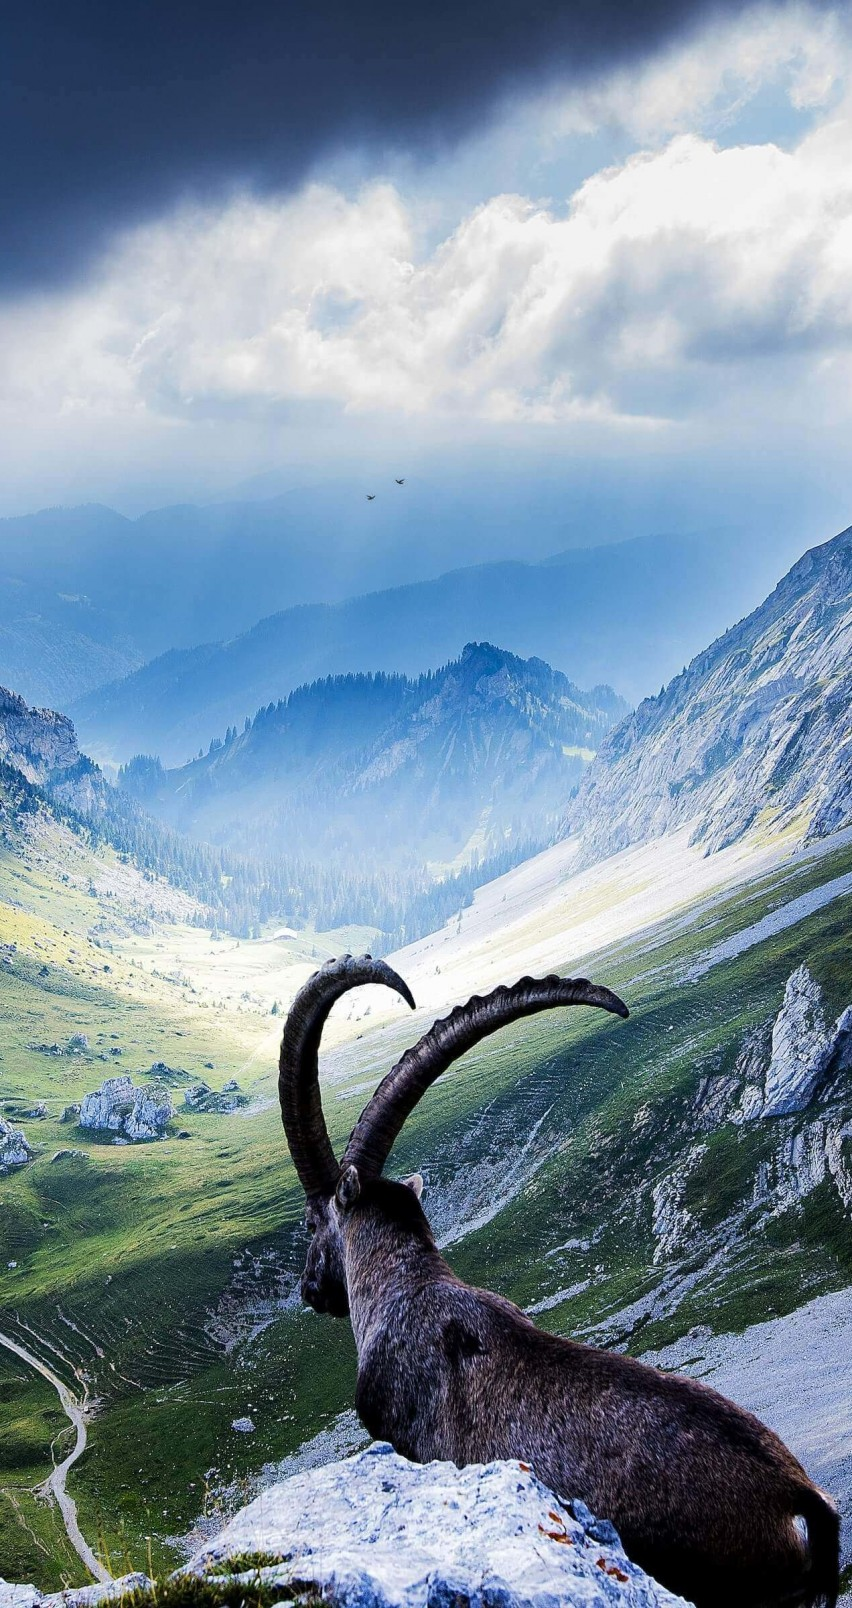 Goat at Pilatus, Switzerland Wallpaper for Apple iPhone 6 / 6s